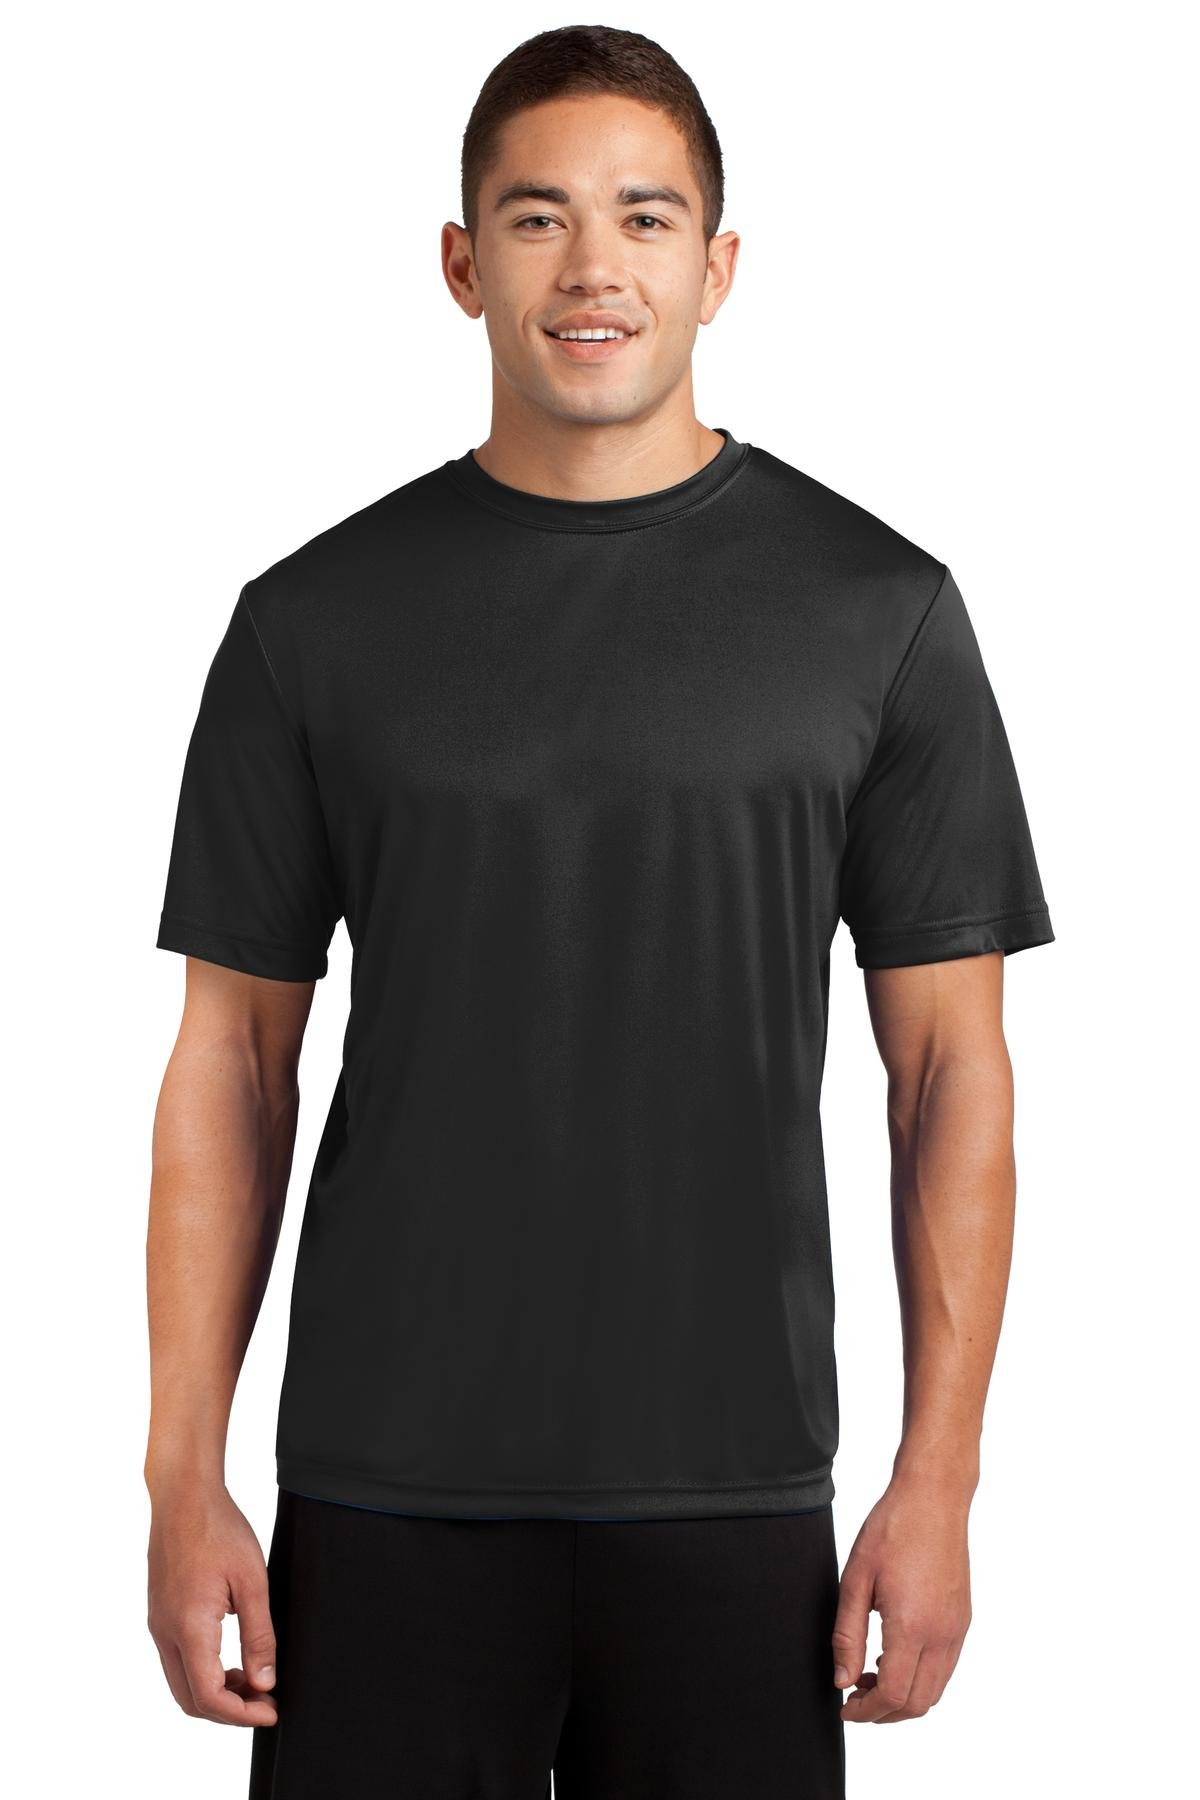 Dri-Tek Mens Big & Tall Short Sleeve Moisture Wicking Athletic T-Shirt, XLT, Black